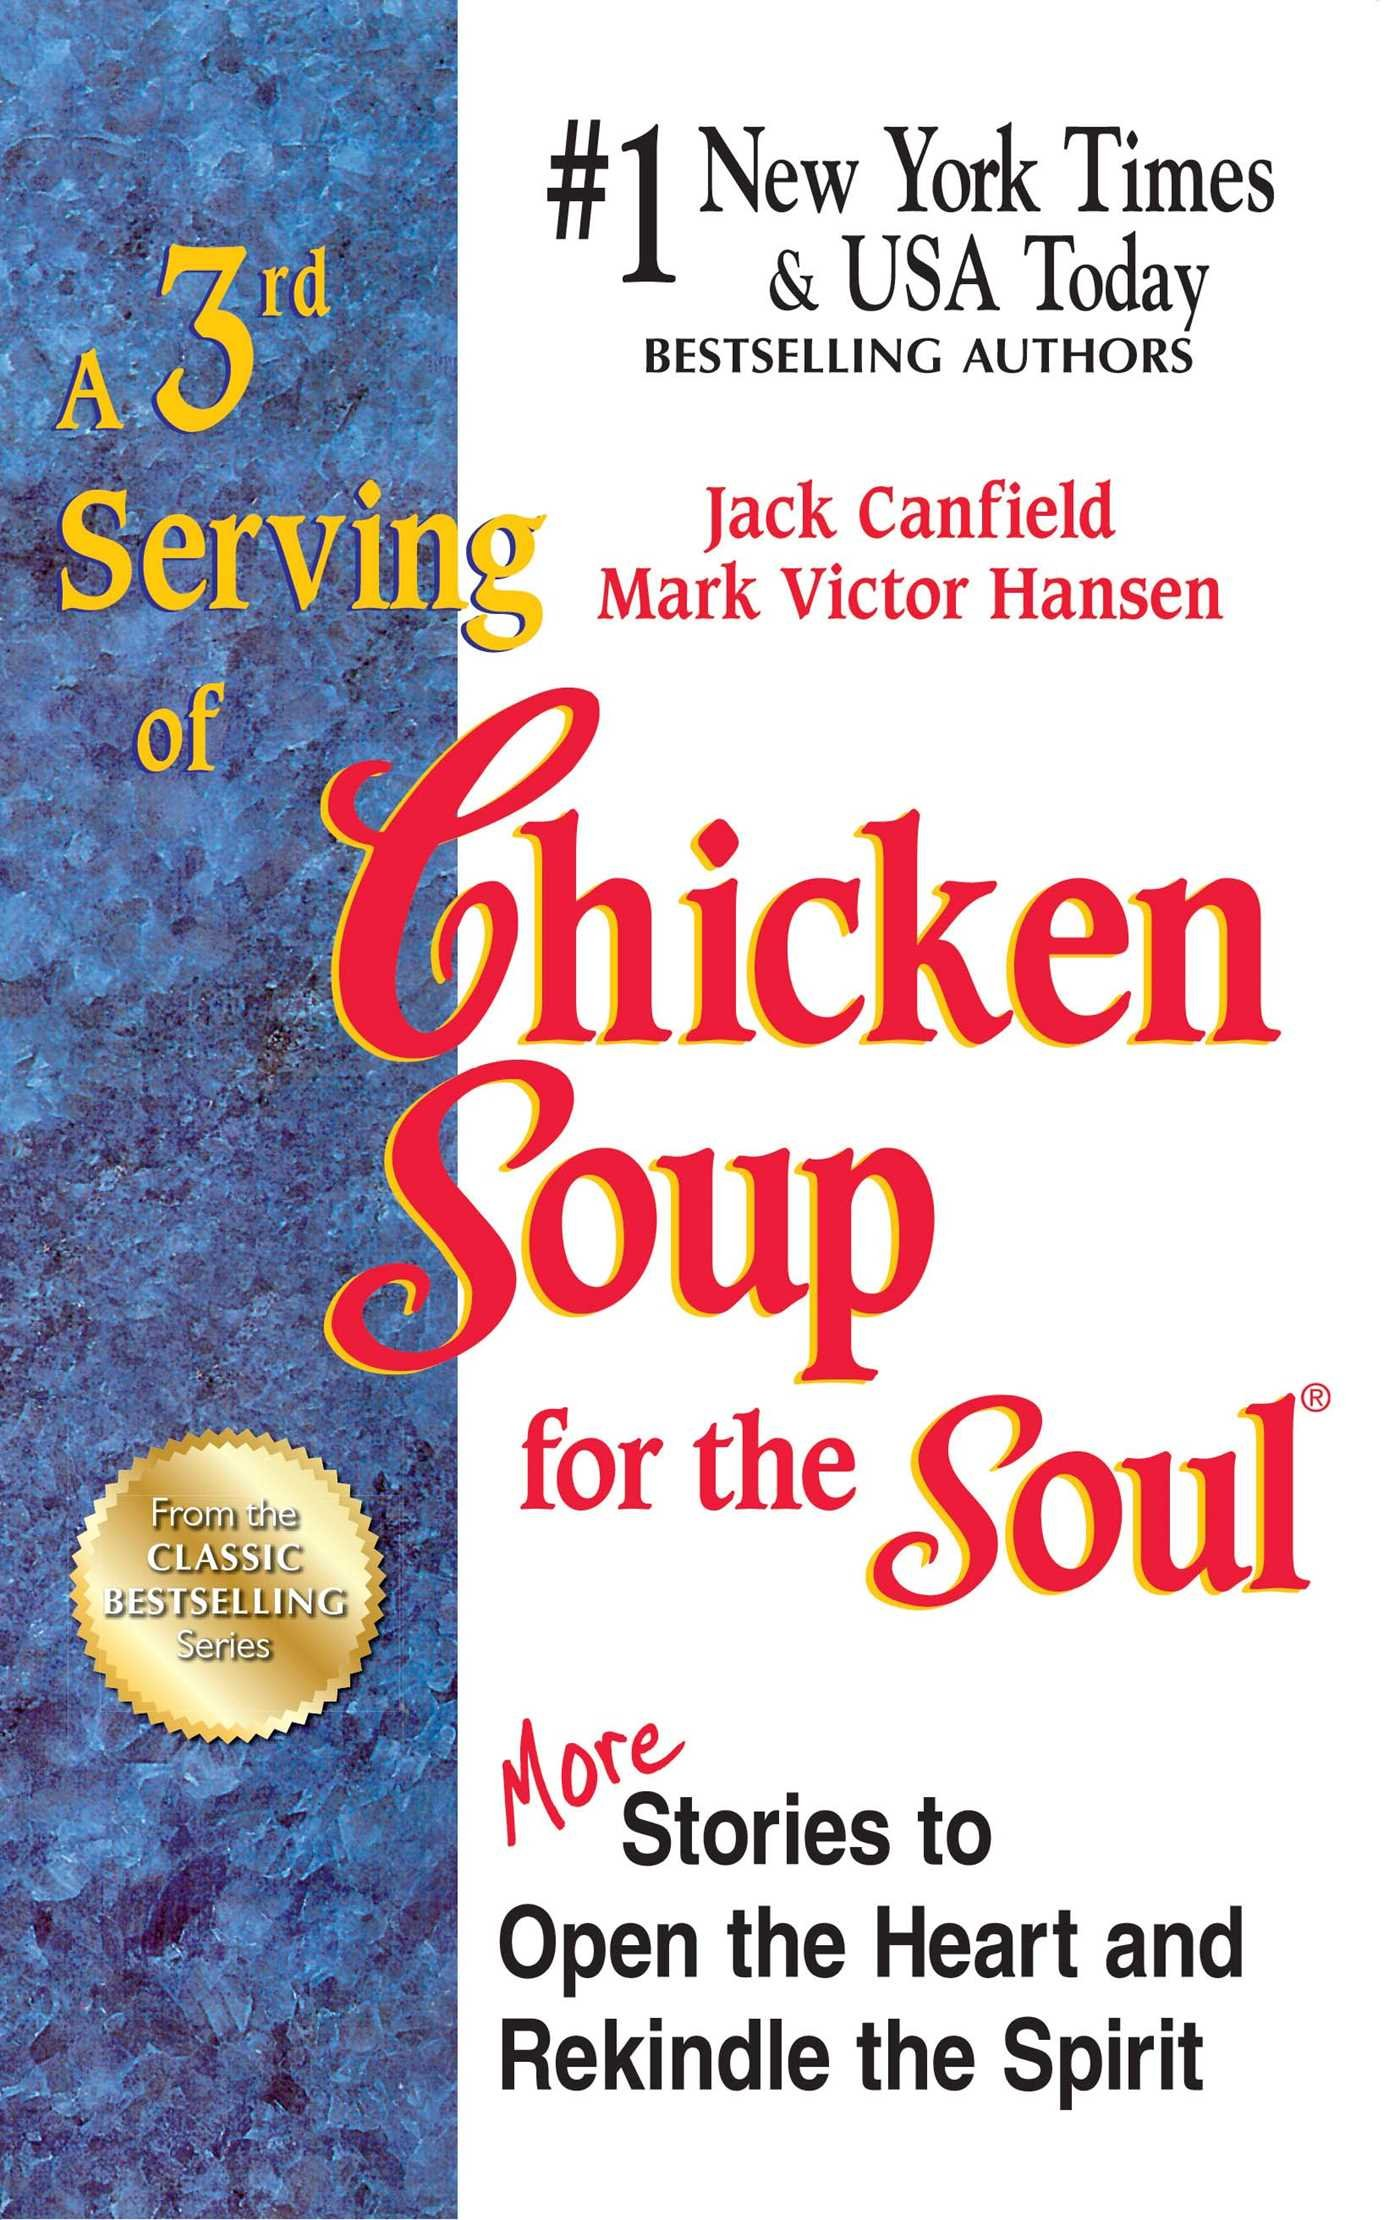 A 3rd Serving of Chicken Soup for the Soul: 101 More Stories to Open the  Heart and Rekindle the Spirit: Jack Canfield, Mark Victor Hansen:  9781623610371: ...